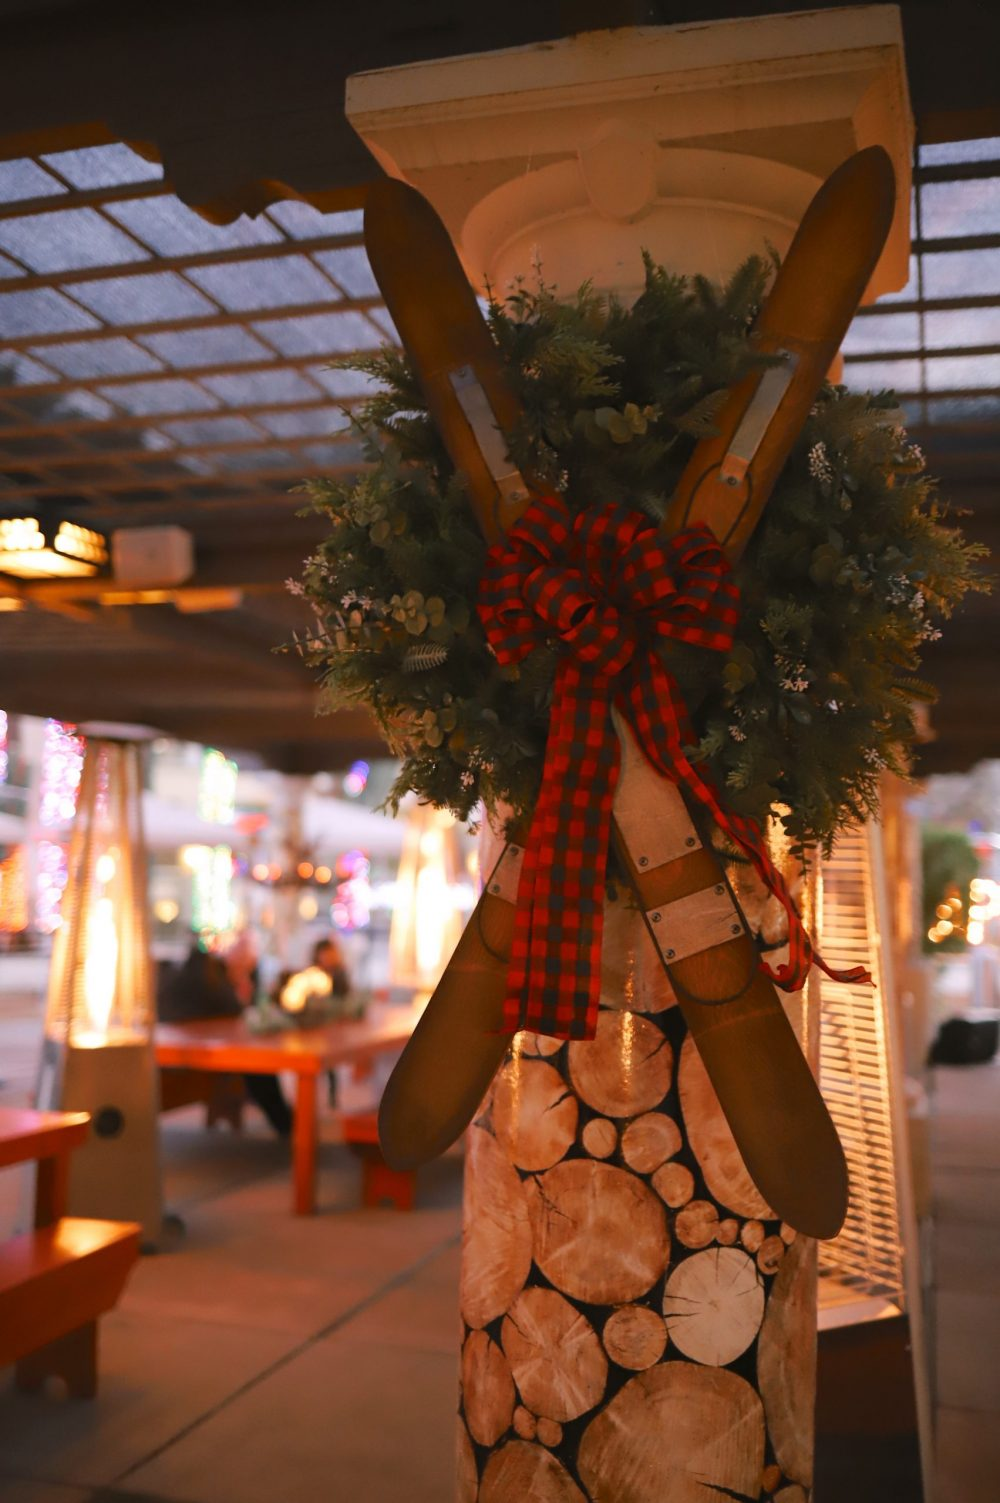 One of the Best Secret Winter Sun Destinations, Scottsdale Arizona. Family-friendly dinner at fun holiday pop up restaurant The Lodge at The Scottsdale Princess |Guide by popular Florida travel blog, Fresh Mommy Blog: image of a snow skis Christmas wreath.